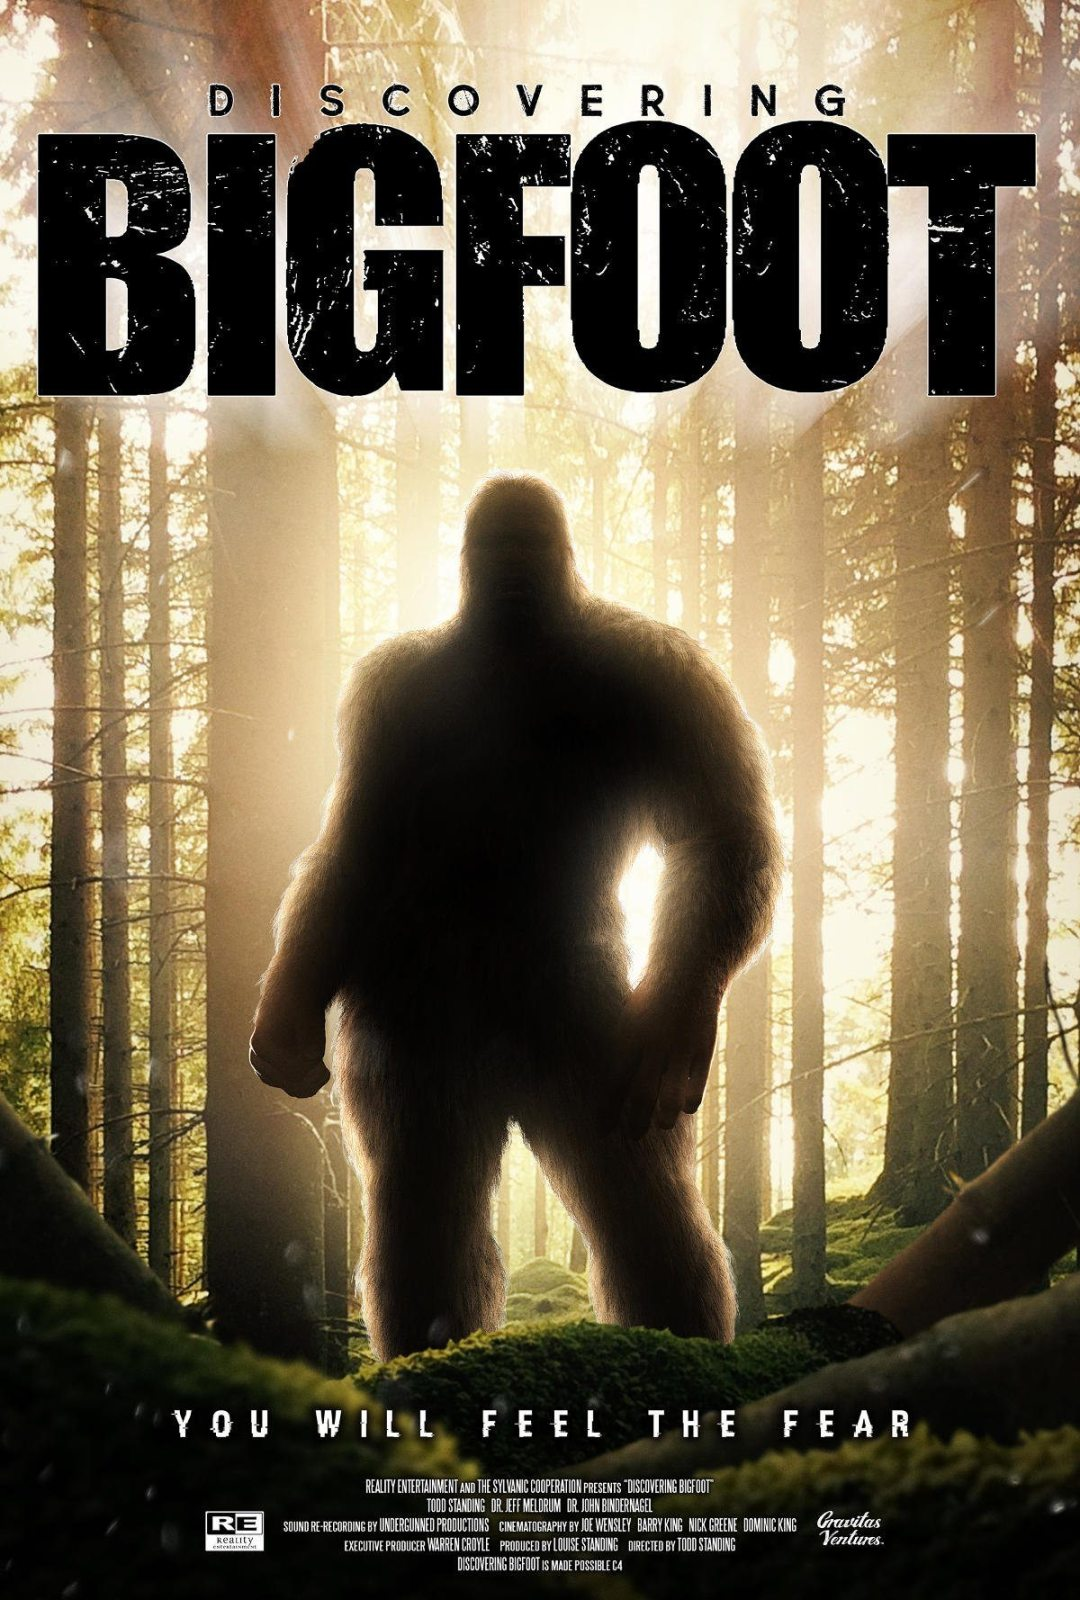 Are You Ready to Start 'Discovering Bigfoot?'